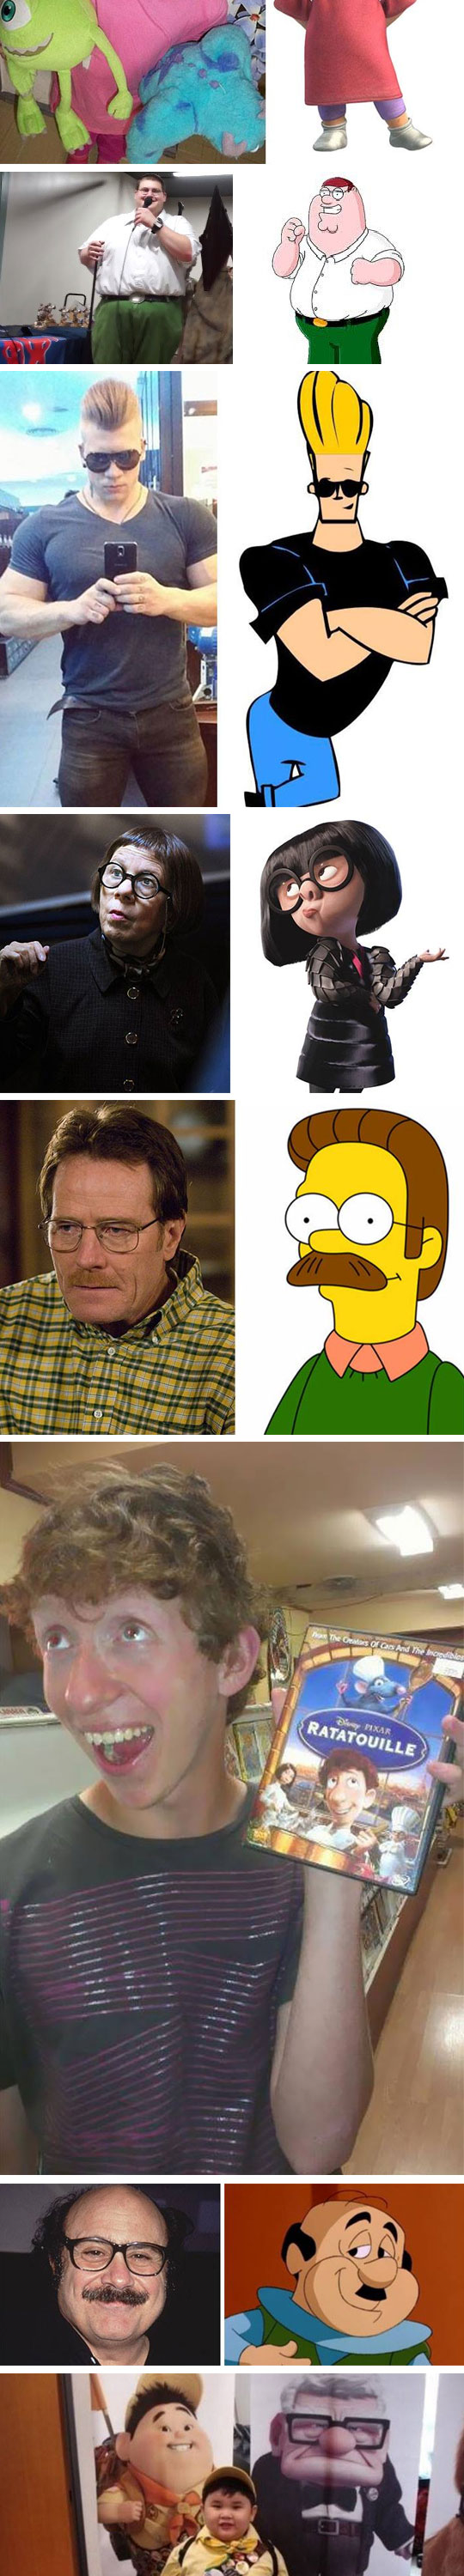 2-funny-ned-flanders-walter-white-lookalike